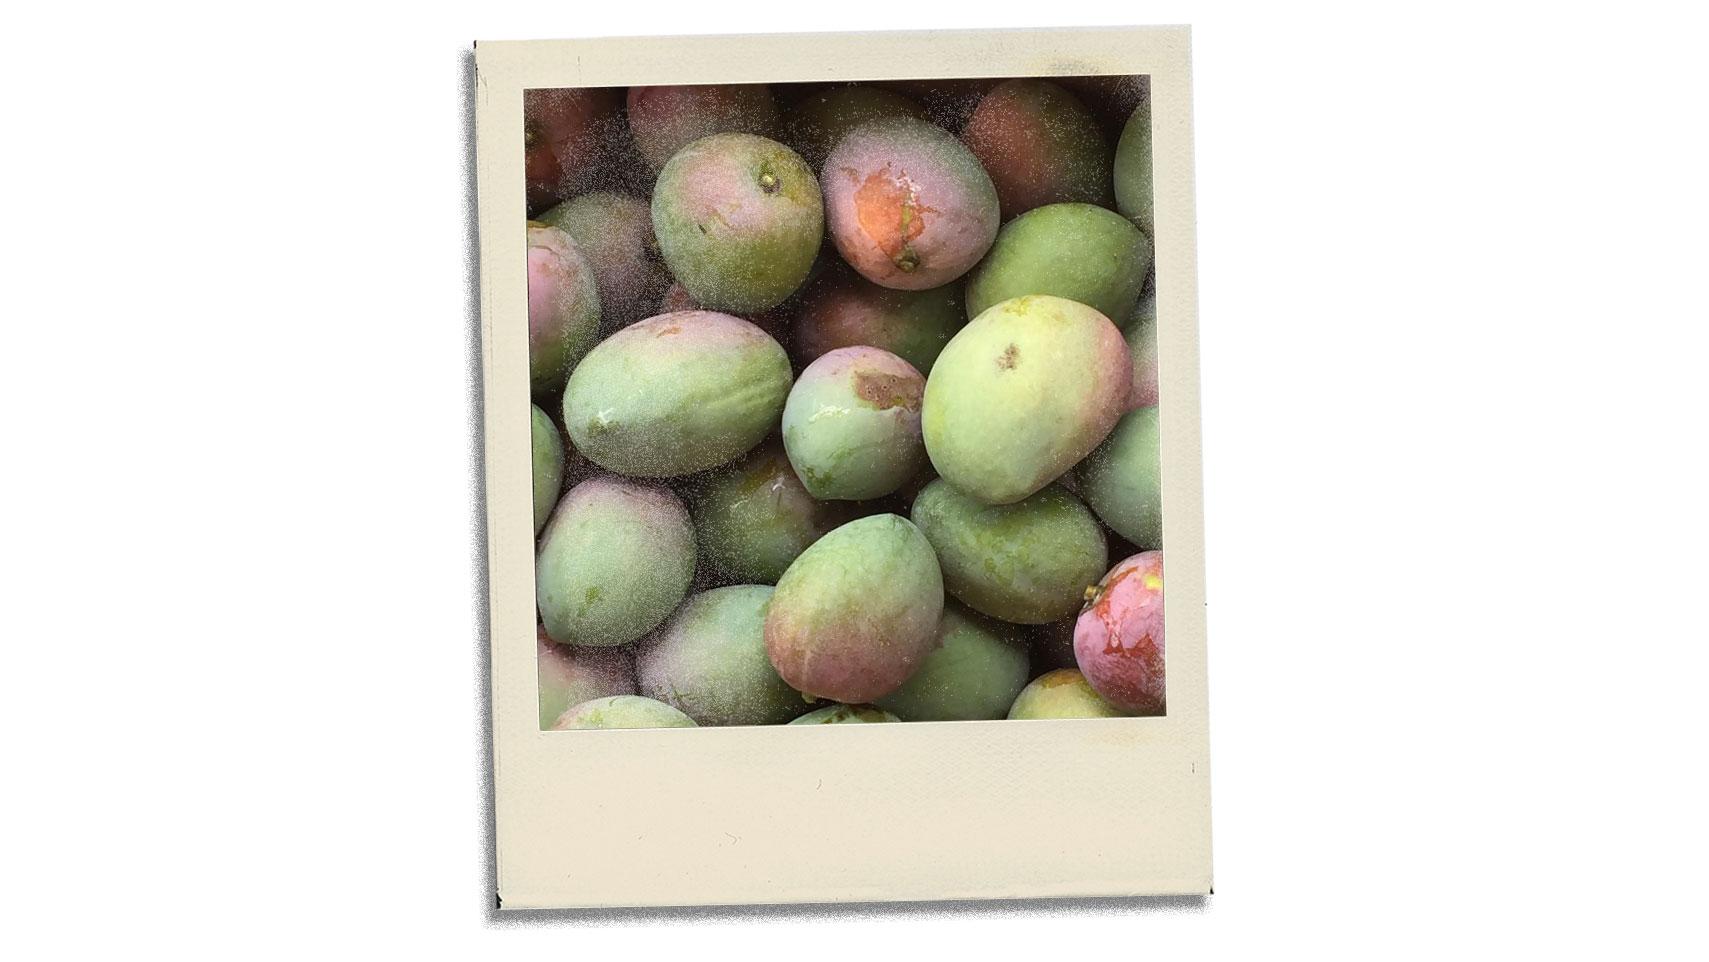 Article-Postcard-From-Deli-Mango-Season